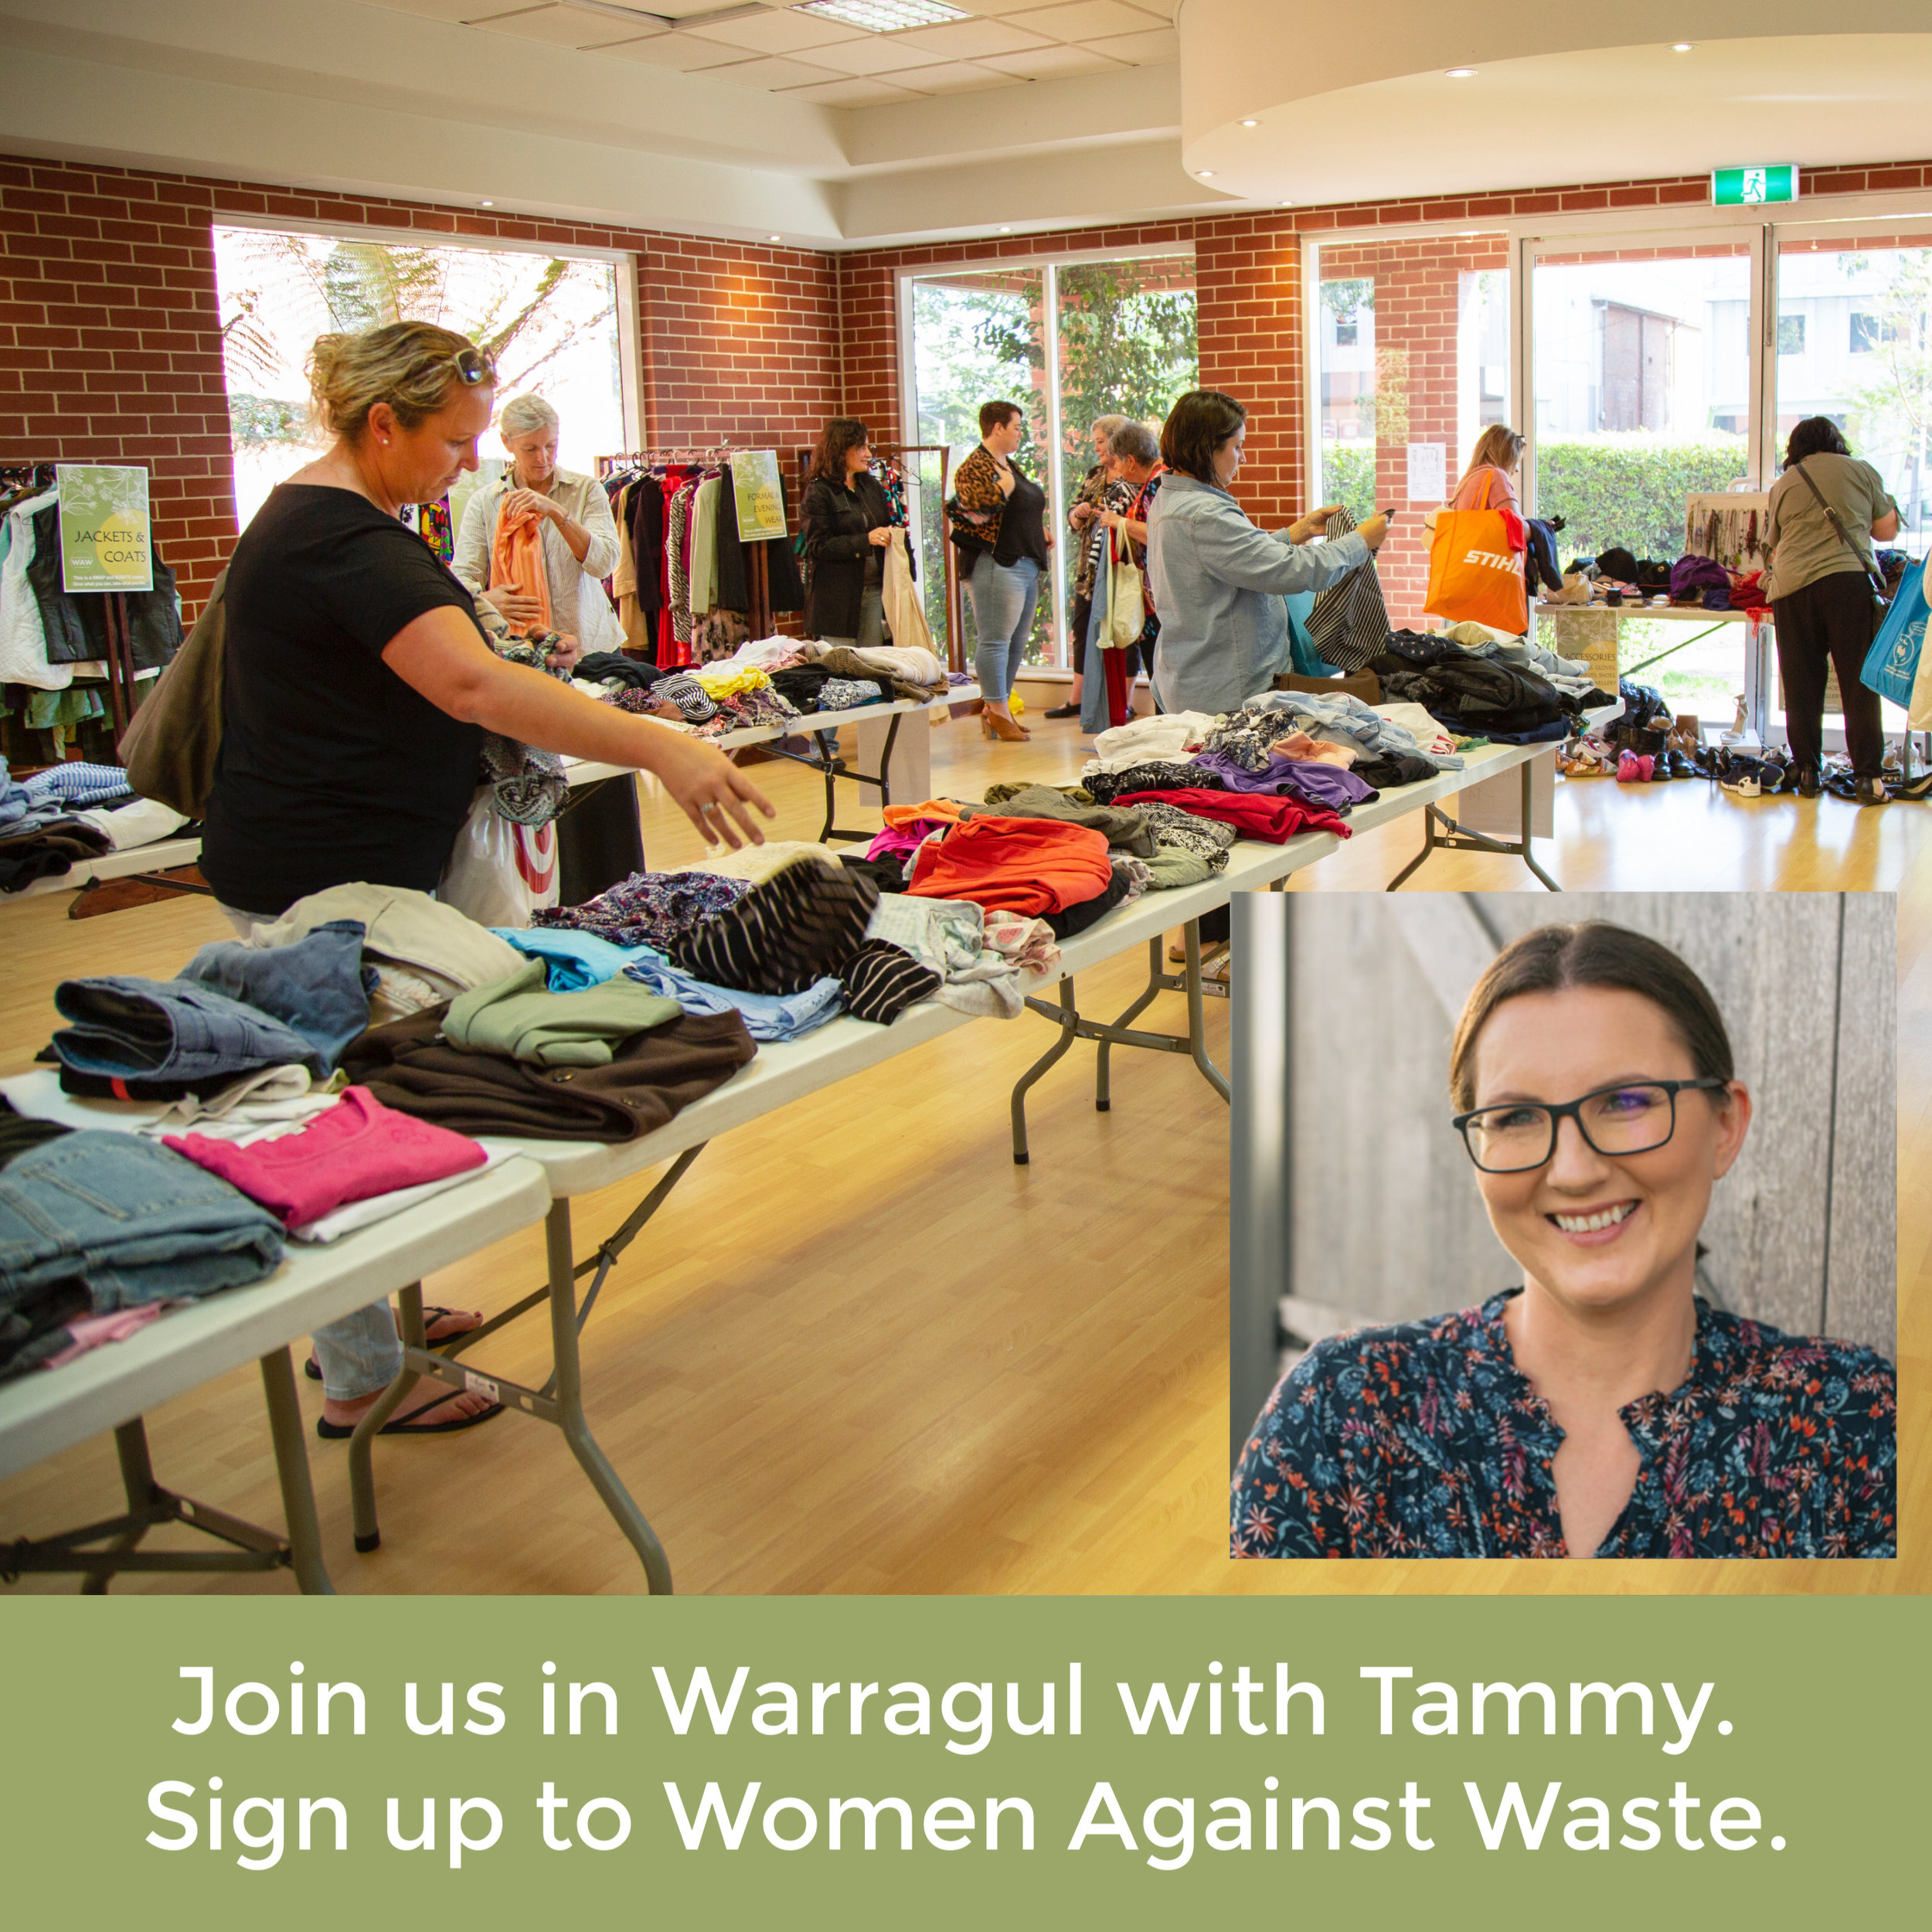 Warragul WAW Event